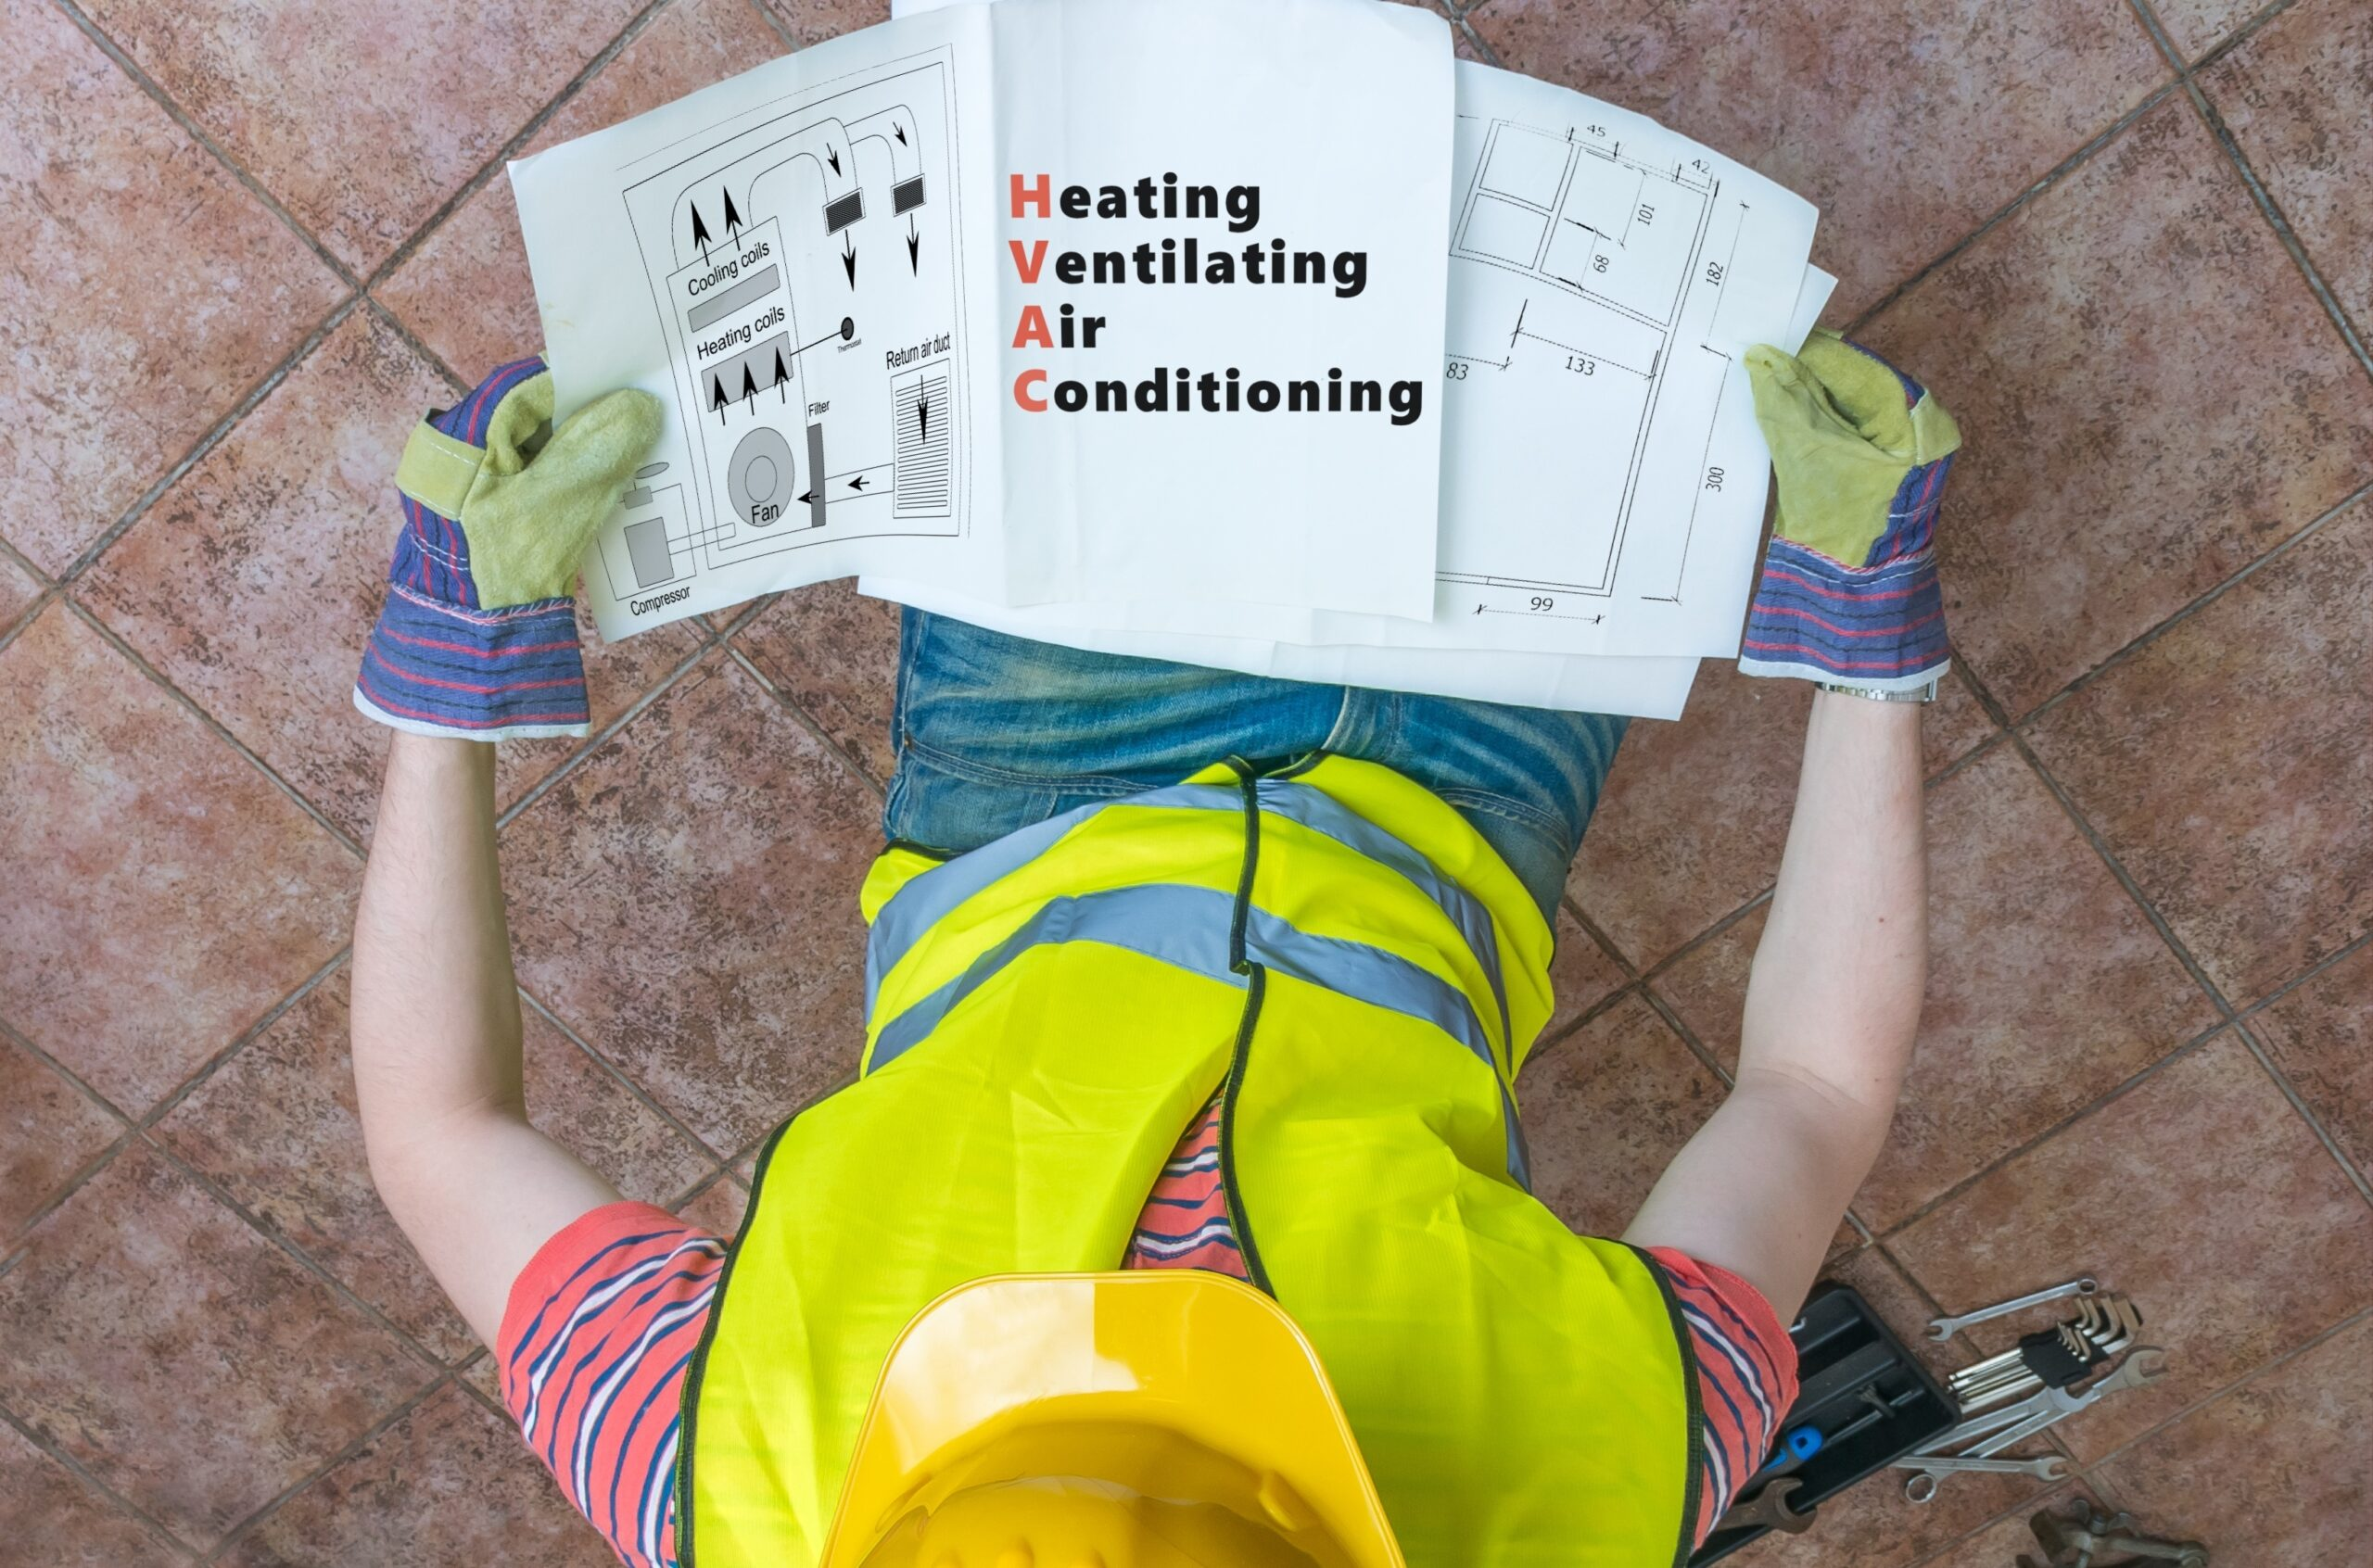 Sensible Heating & Cooling looking for Seasoned HVAC Pros and New Tech Talent